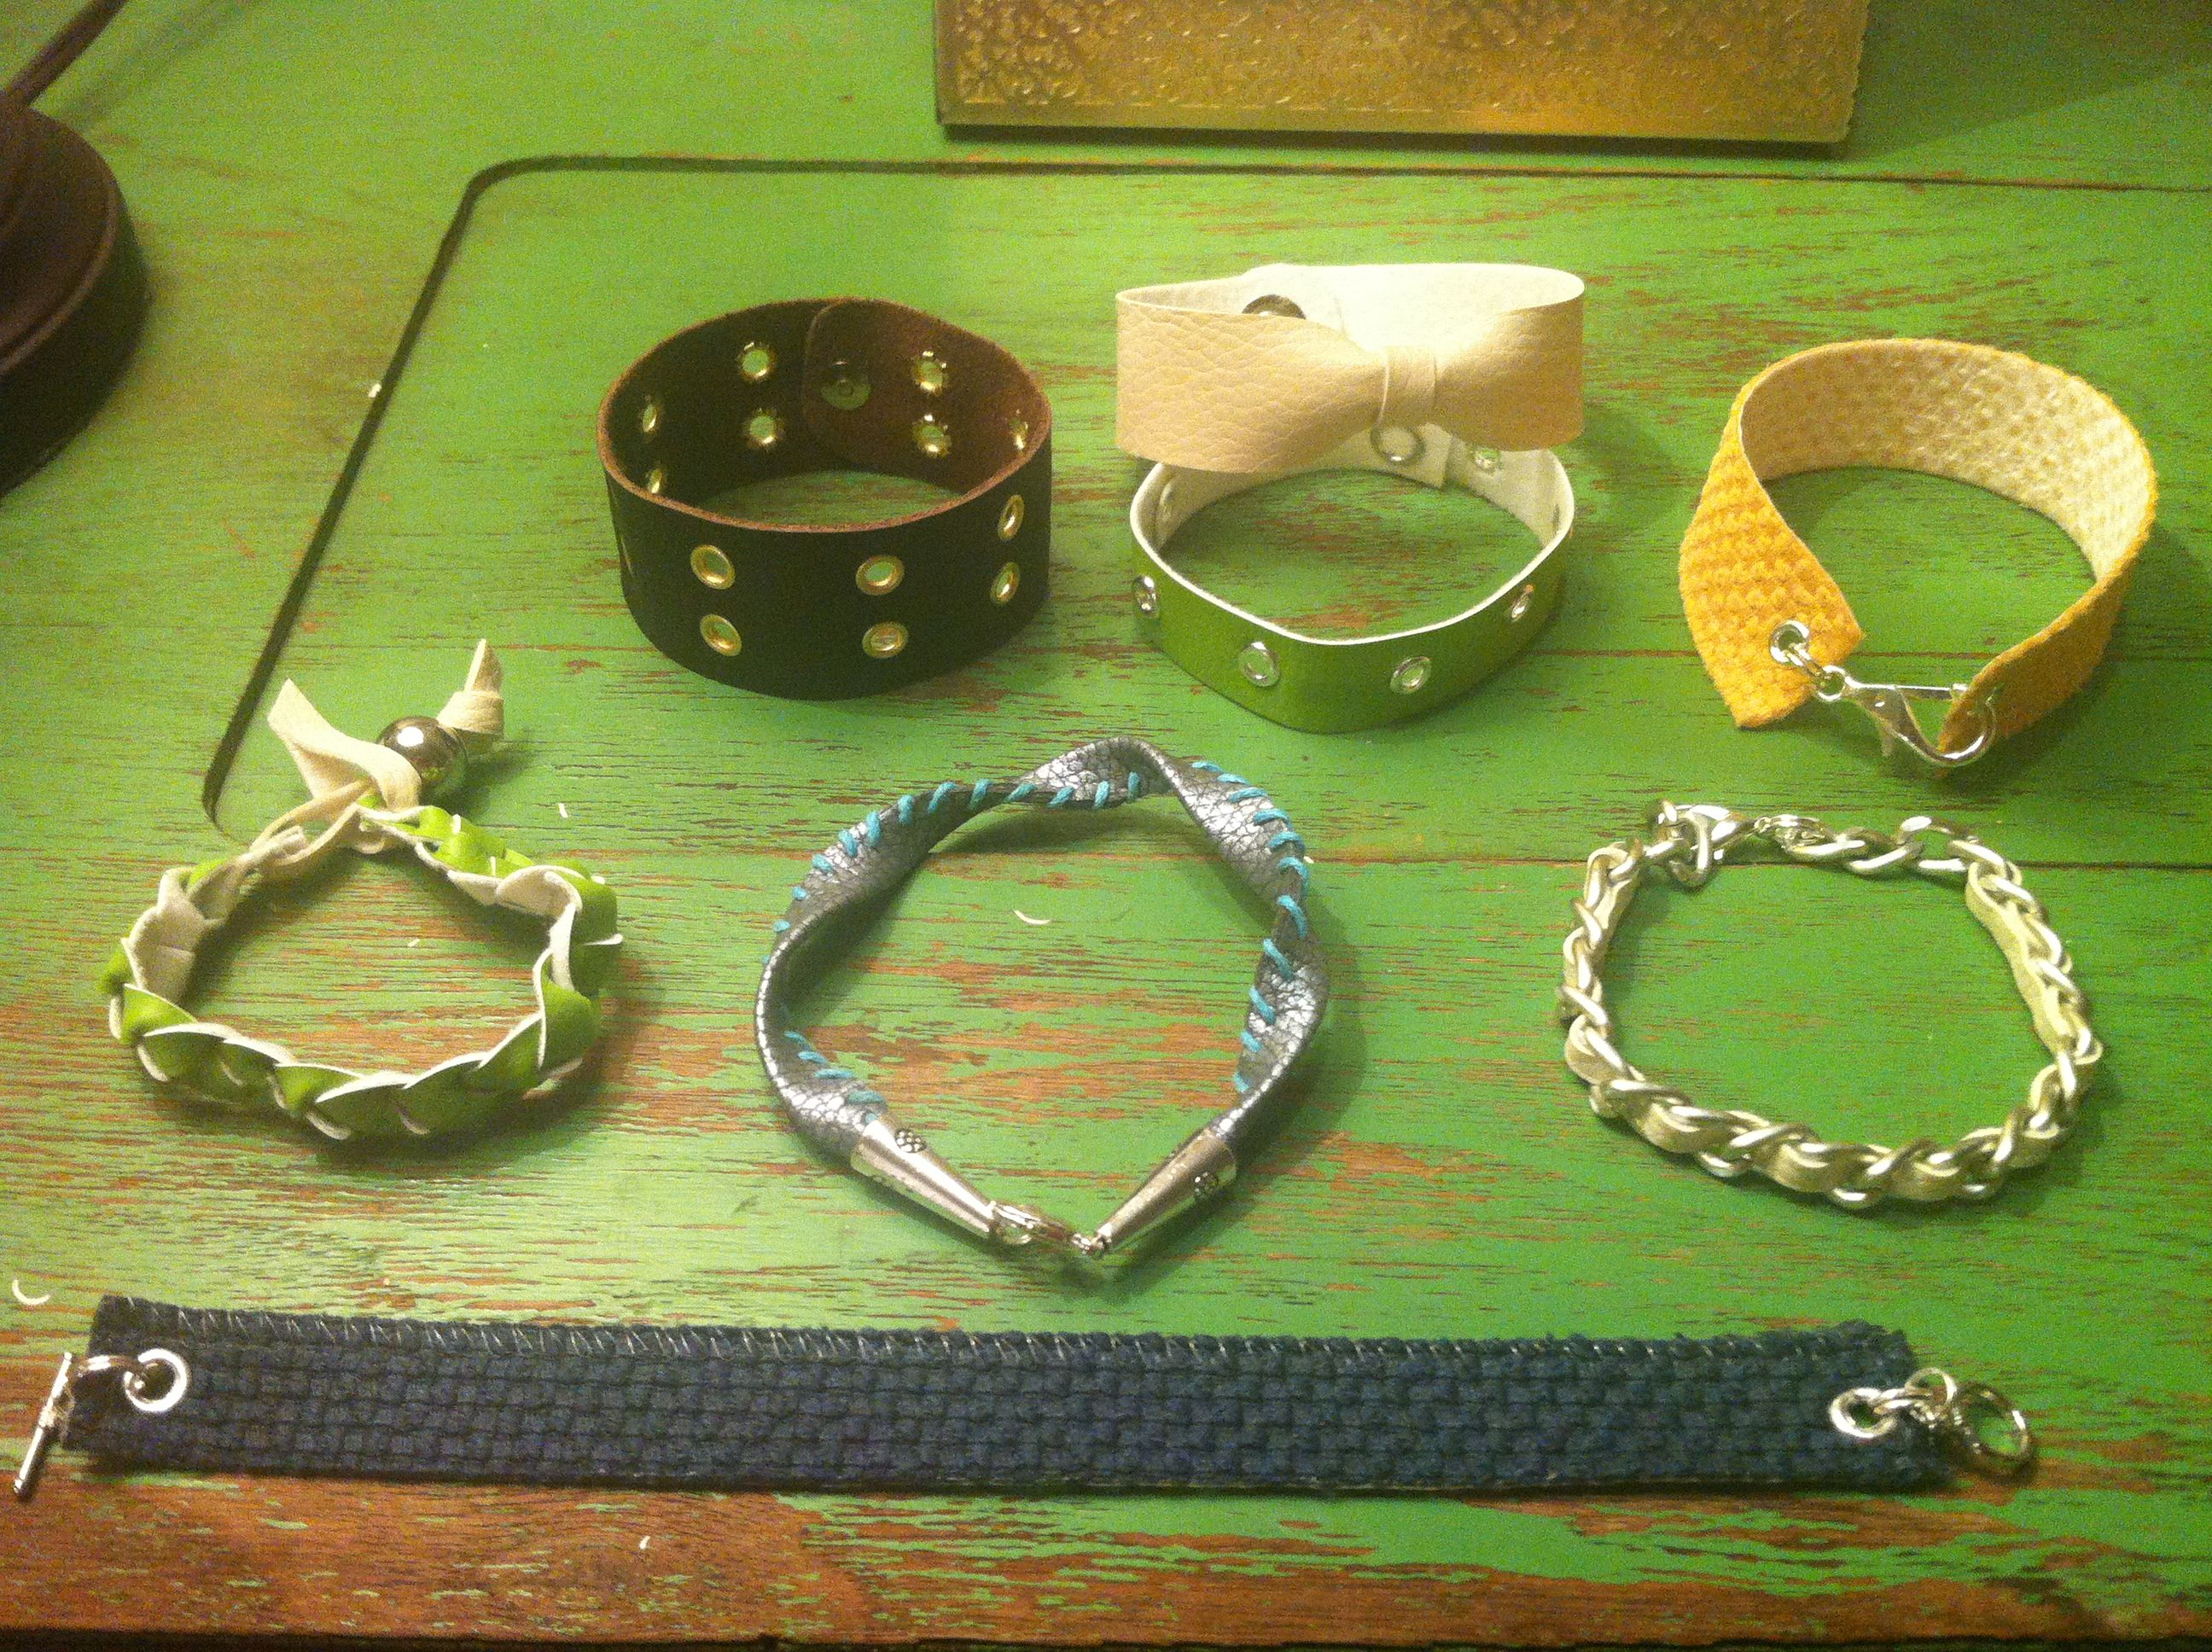 Leather, vinyl and fabric bracelets made from upholstery scraps. I mined pinterest for ideas, shopped Micheal's and Joann's for jewelry clasps and chains and made these over the weekend. Mix and match!